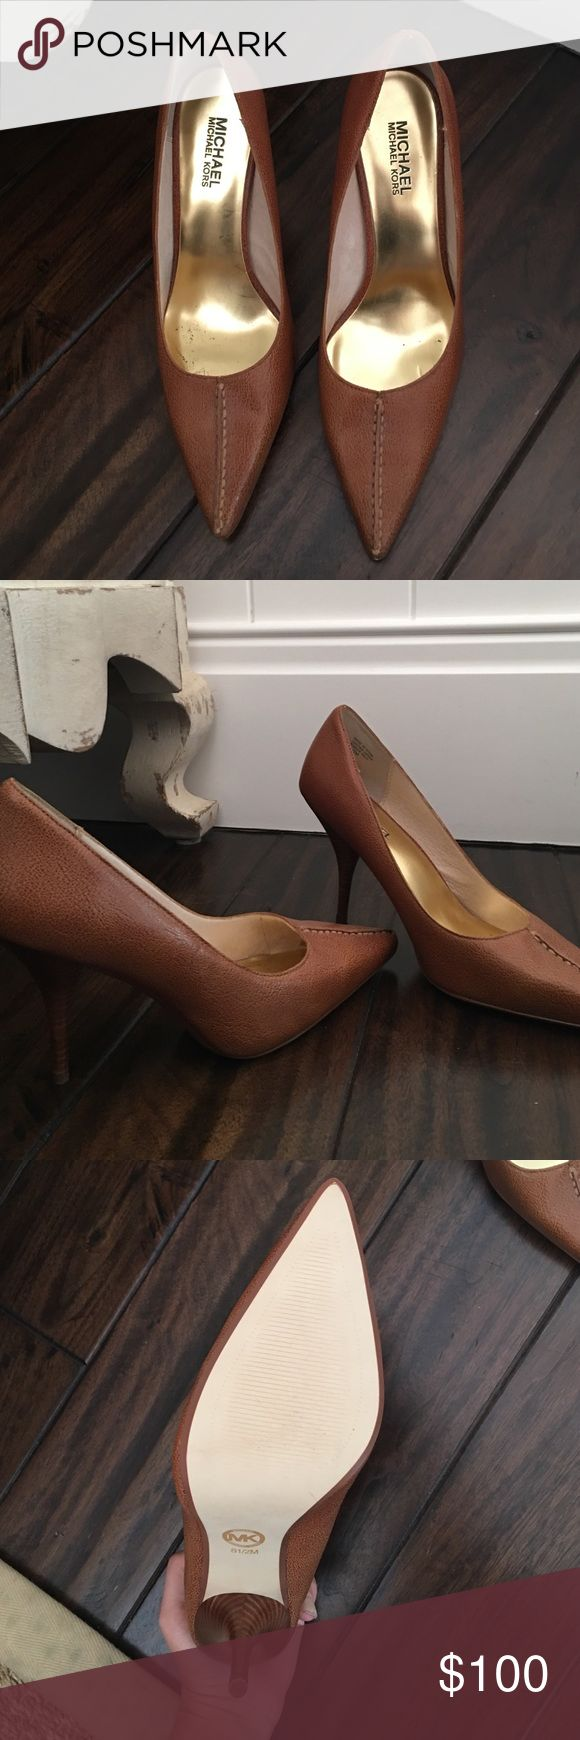 Michael kors heels Cute , sophisticated brown pumps . Never been worn! Make me an offer ! Michael Kors Shoes